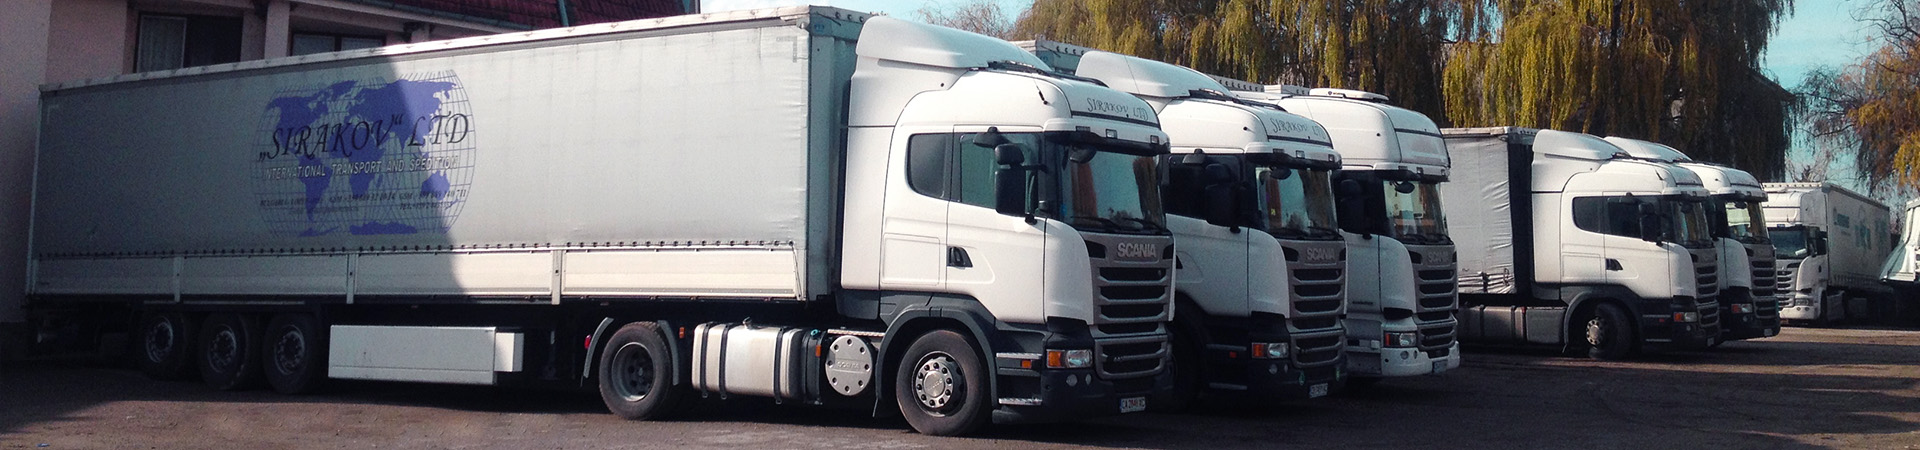 SirakovTrans - International transport and forwarding. TIR parking.